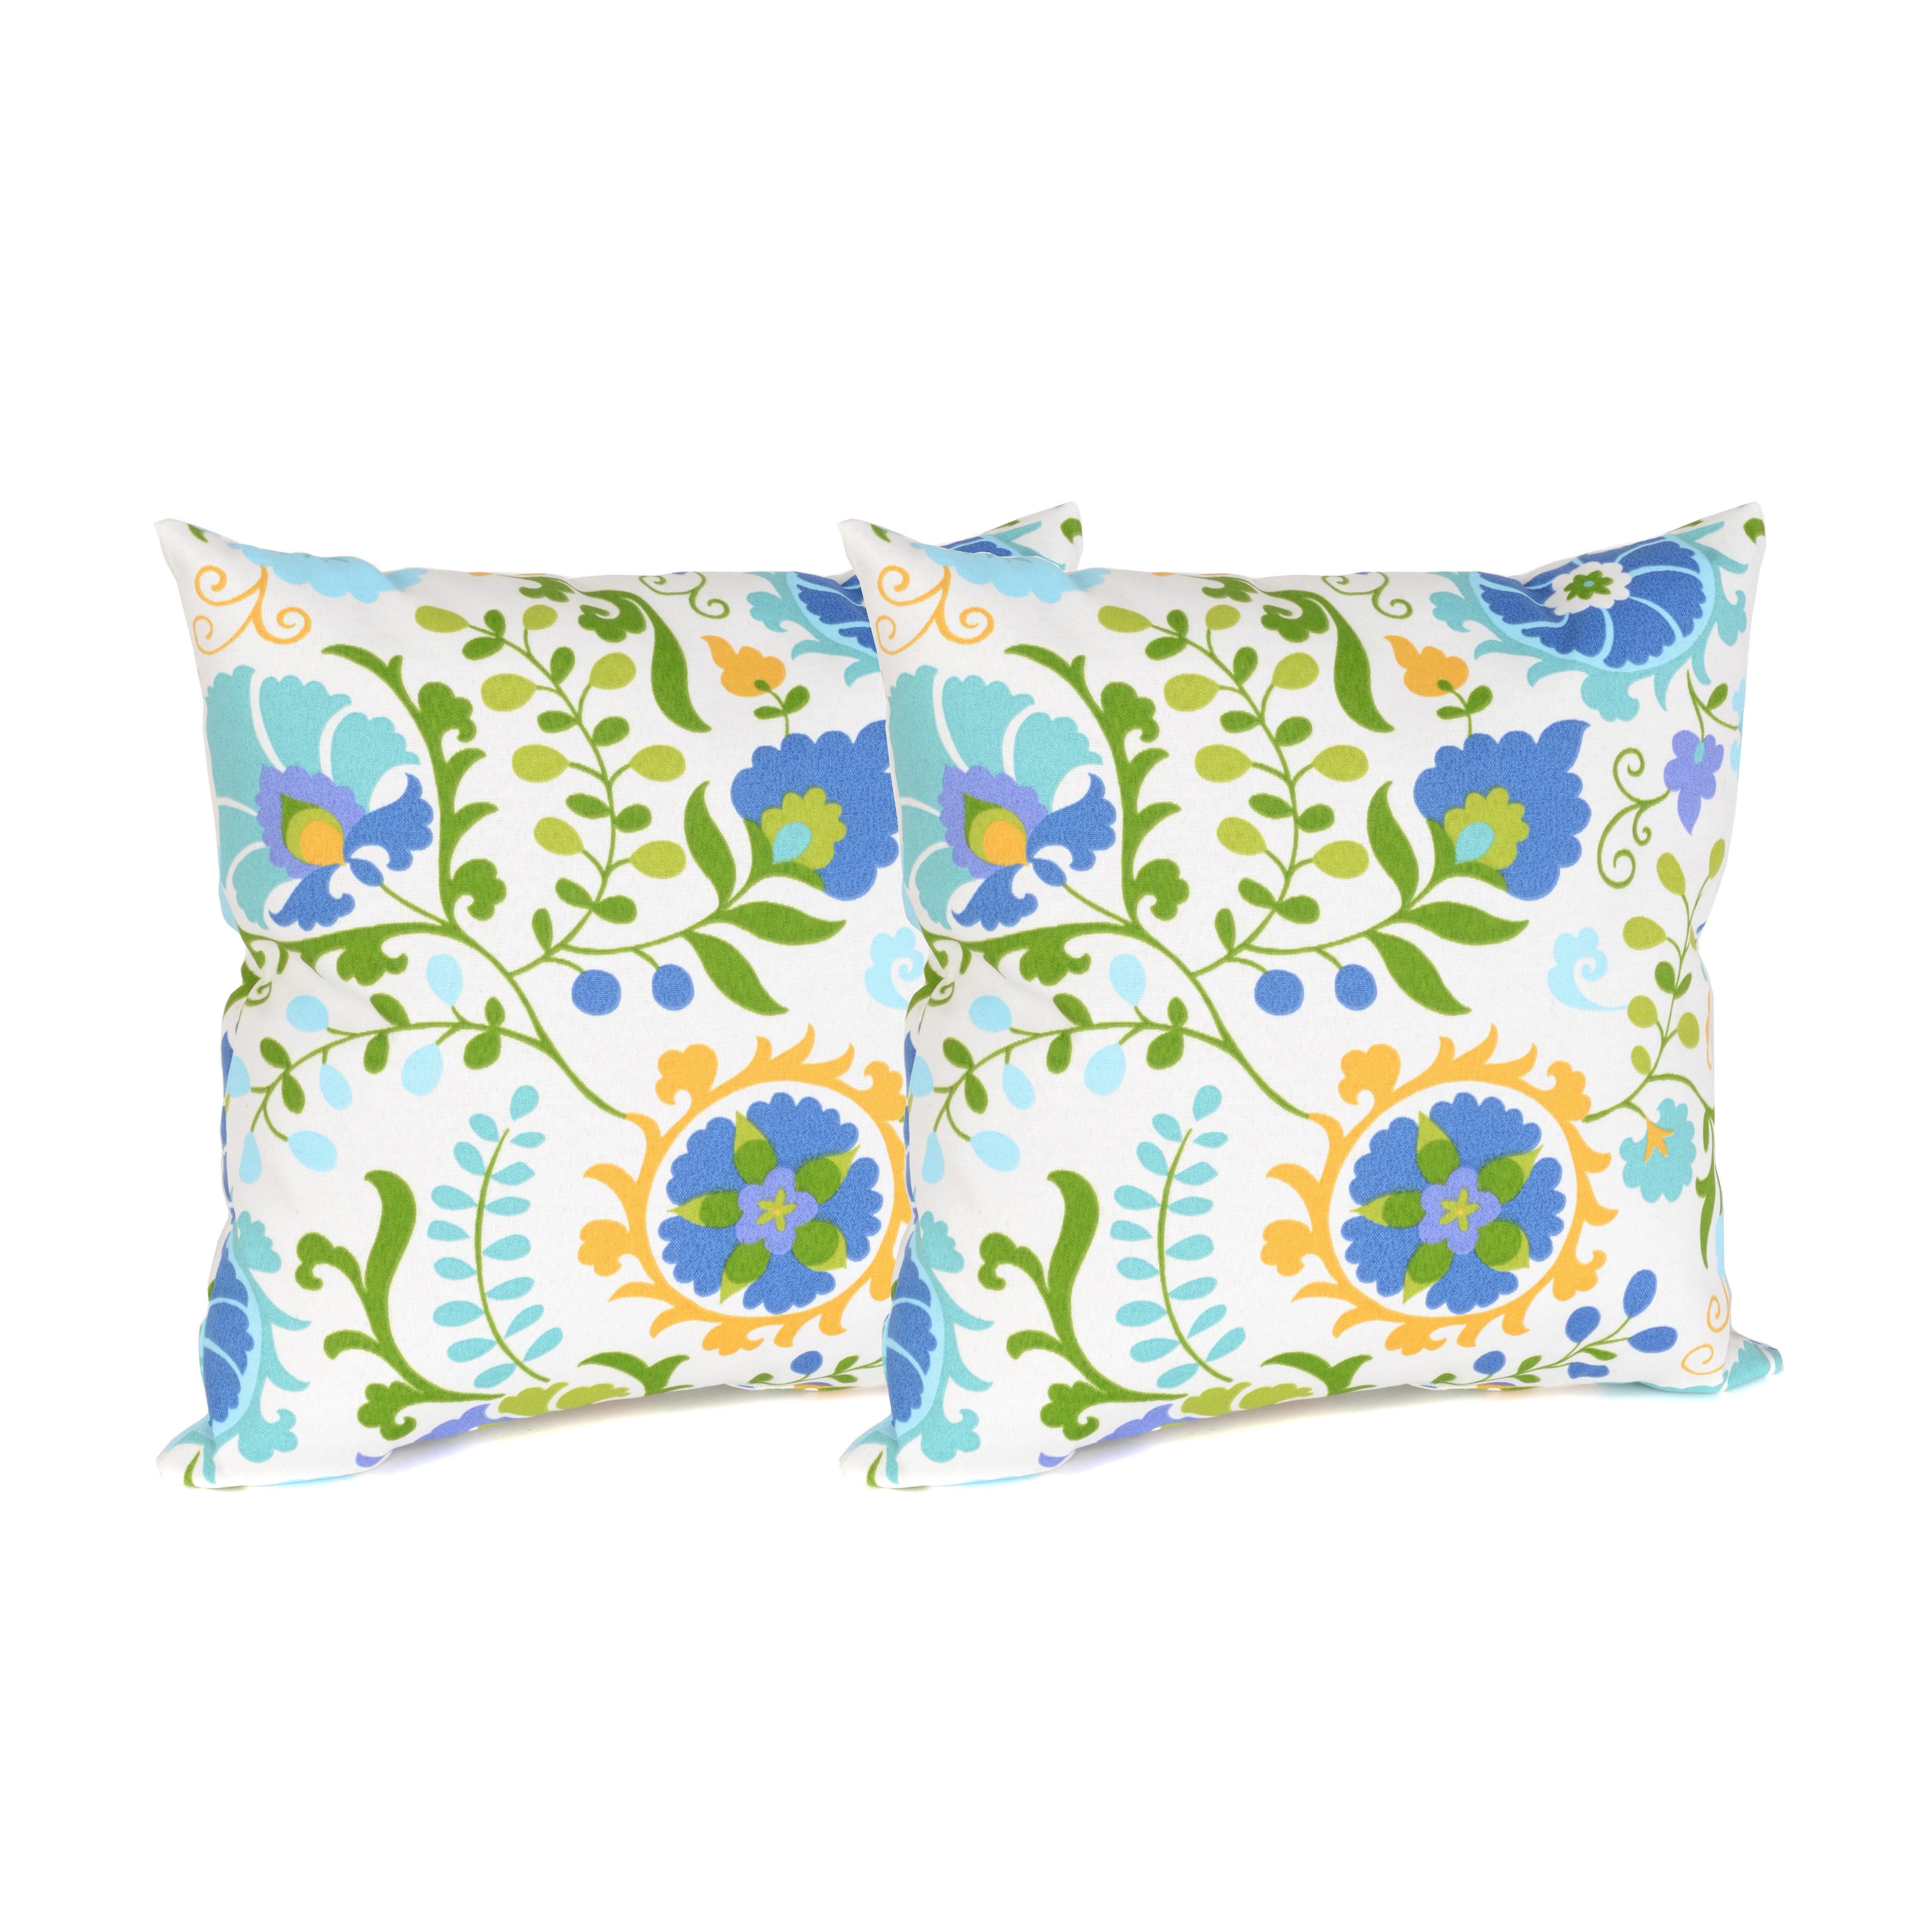 Decorating a wicker bench with Opal Bloom Outdoor Accent Pillows is an effortless way to jazz up the patio. Available online for $29.99. (http://www.kirklands.com/product/Home-Decor/Patio-Decor/Outdoor-Cushions-Pillows/Opal-Bloom-Outdoor-Accent-Pillows-Set-of-2/pc/2284/c/2771/sc/2641/174304.uts) (Photo: Business Wire)